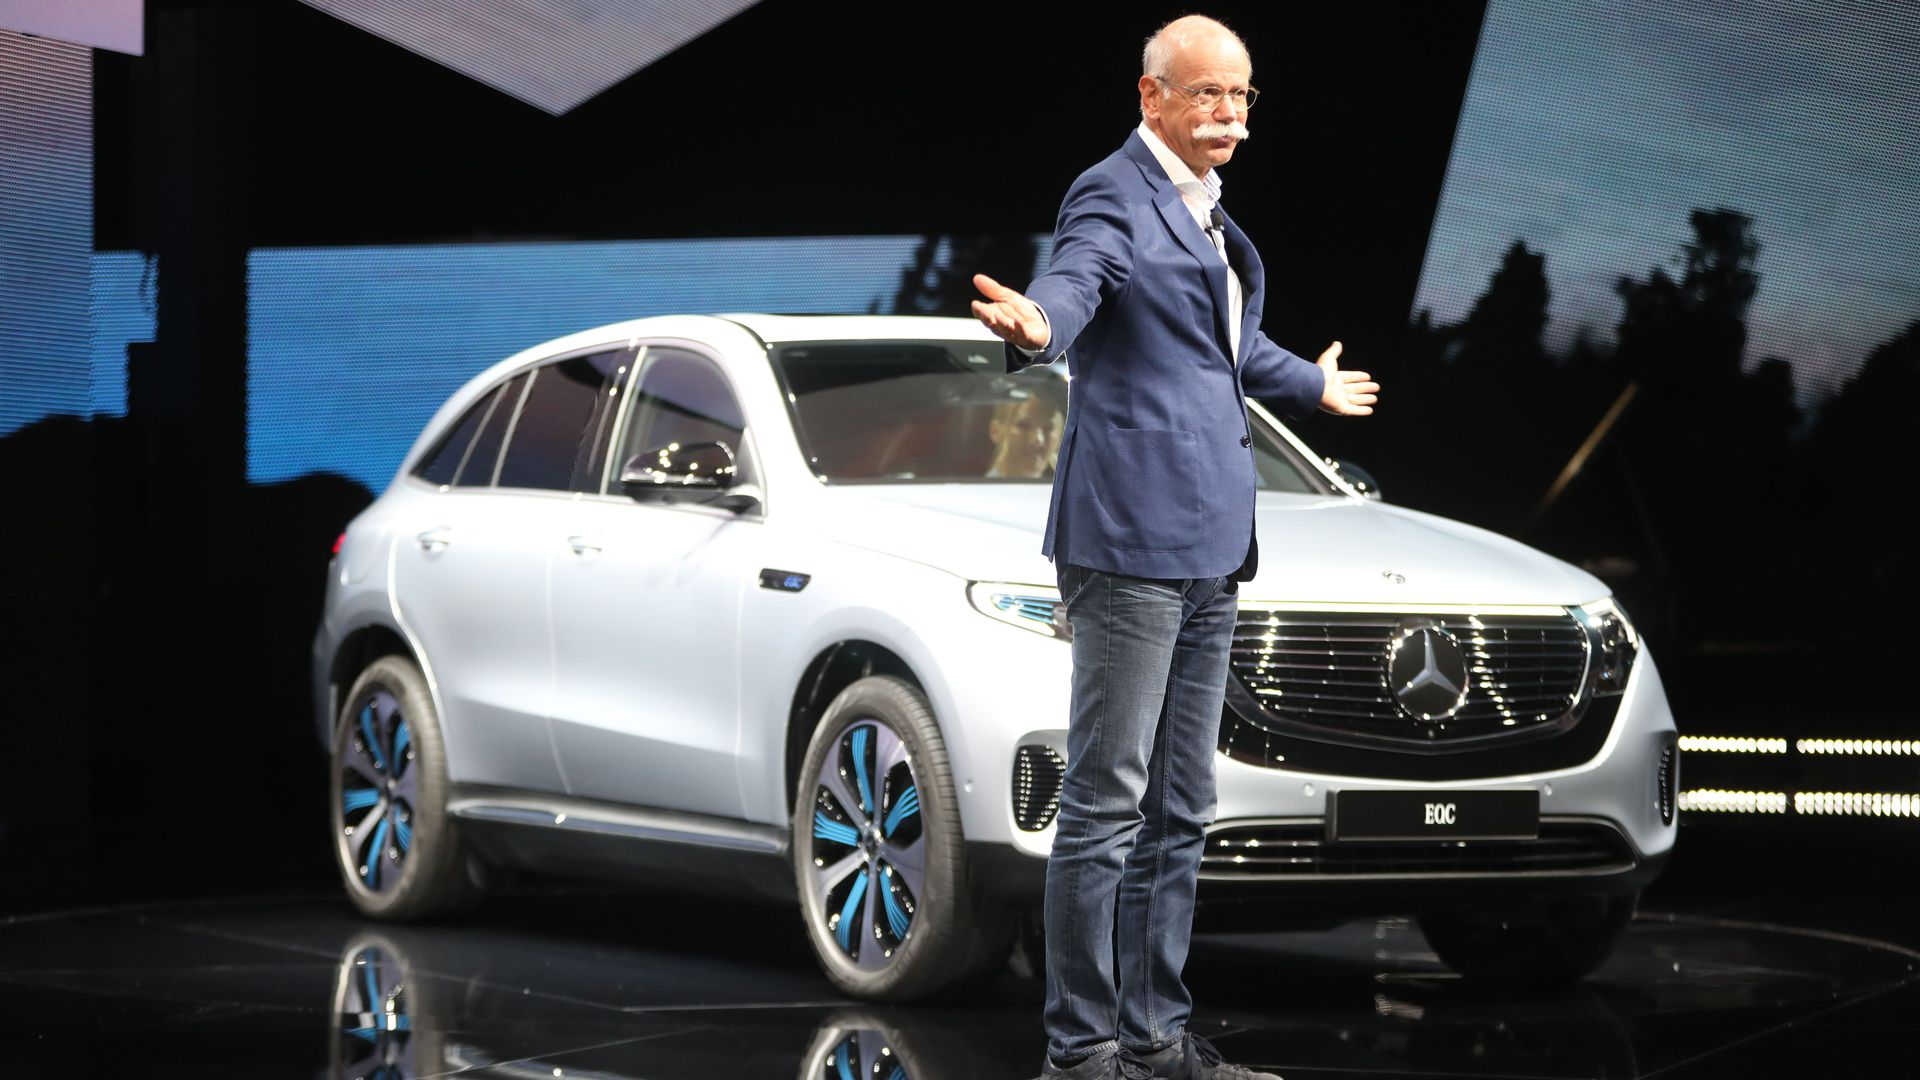 Mercedes Benz Unveils First Electric Car In New Series